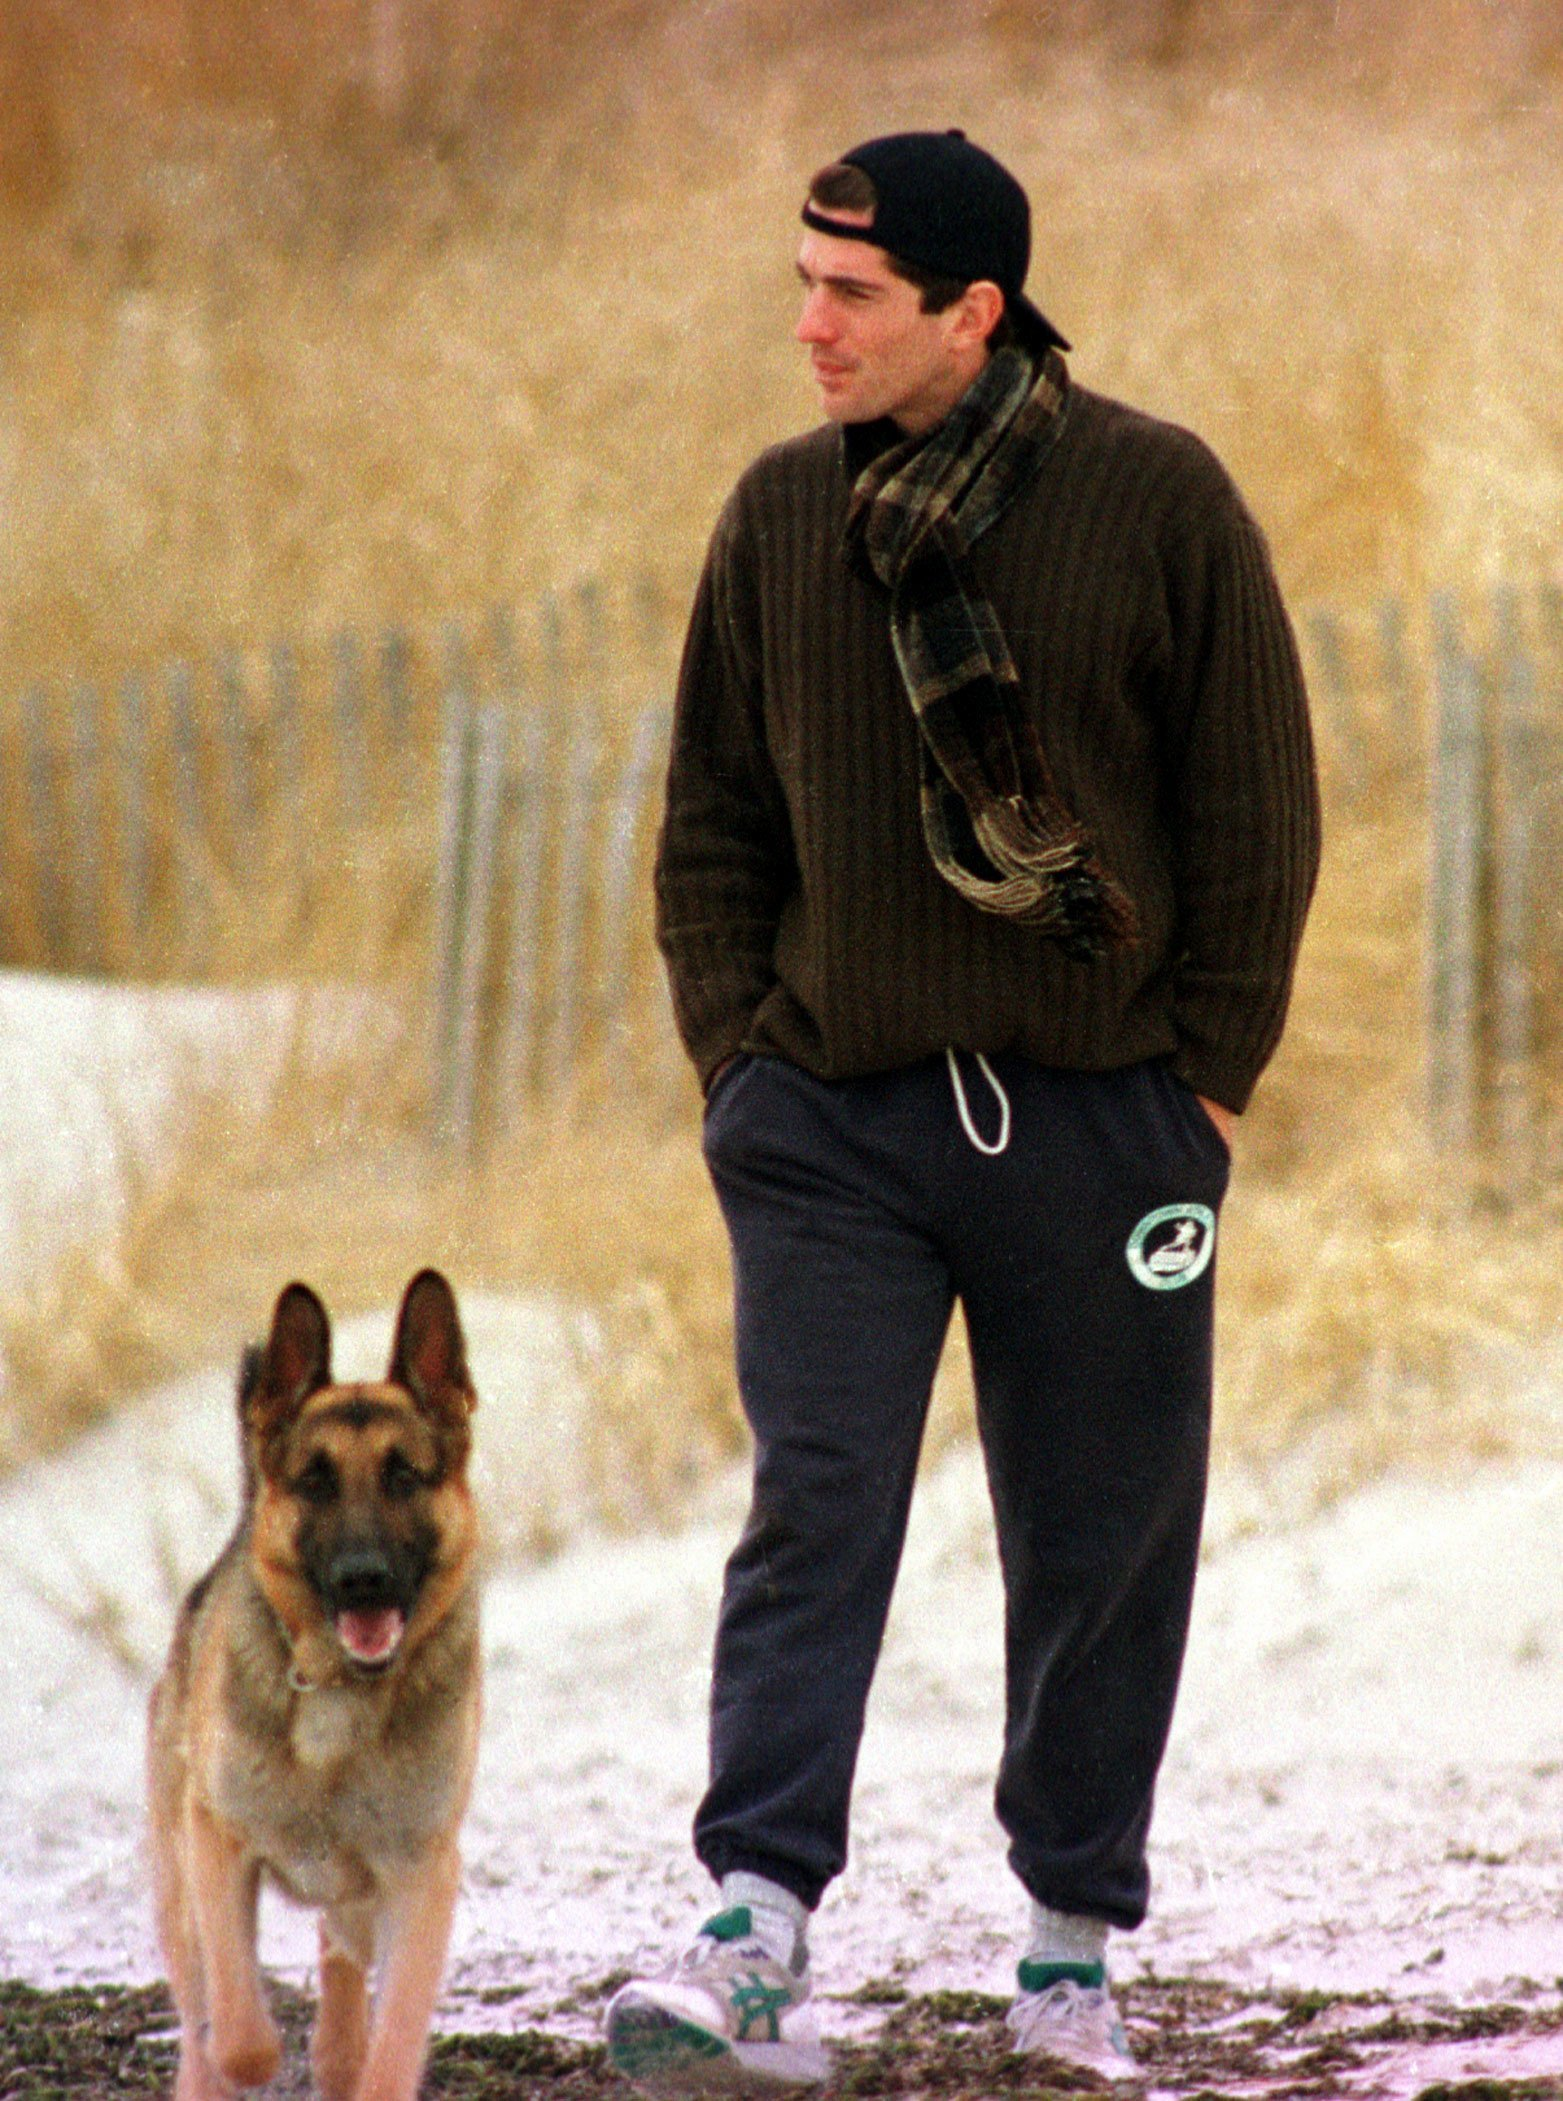 John F. Kennedy Jr. in Hyannis Port, Massachusetts, on January 24, 1995. | Source: Getty Images.